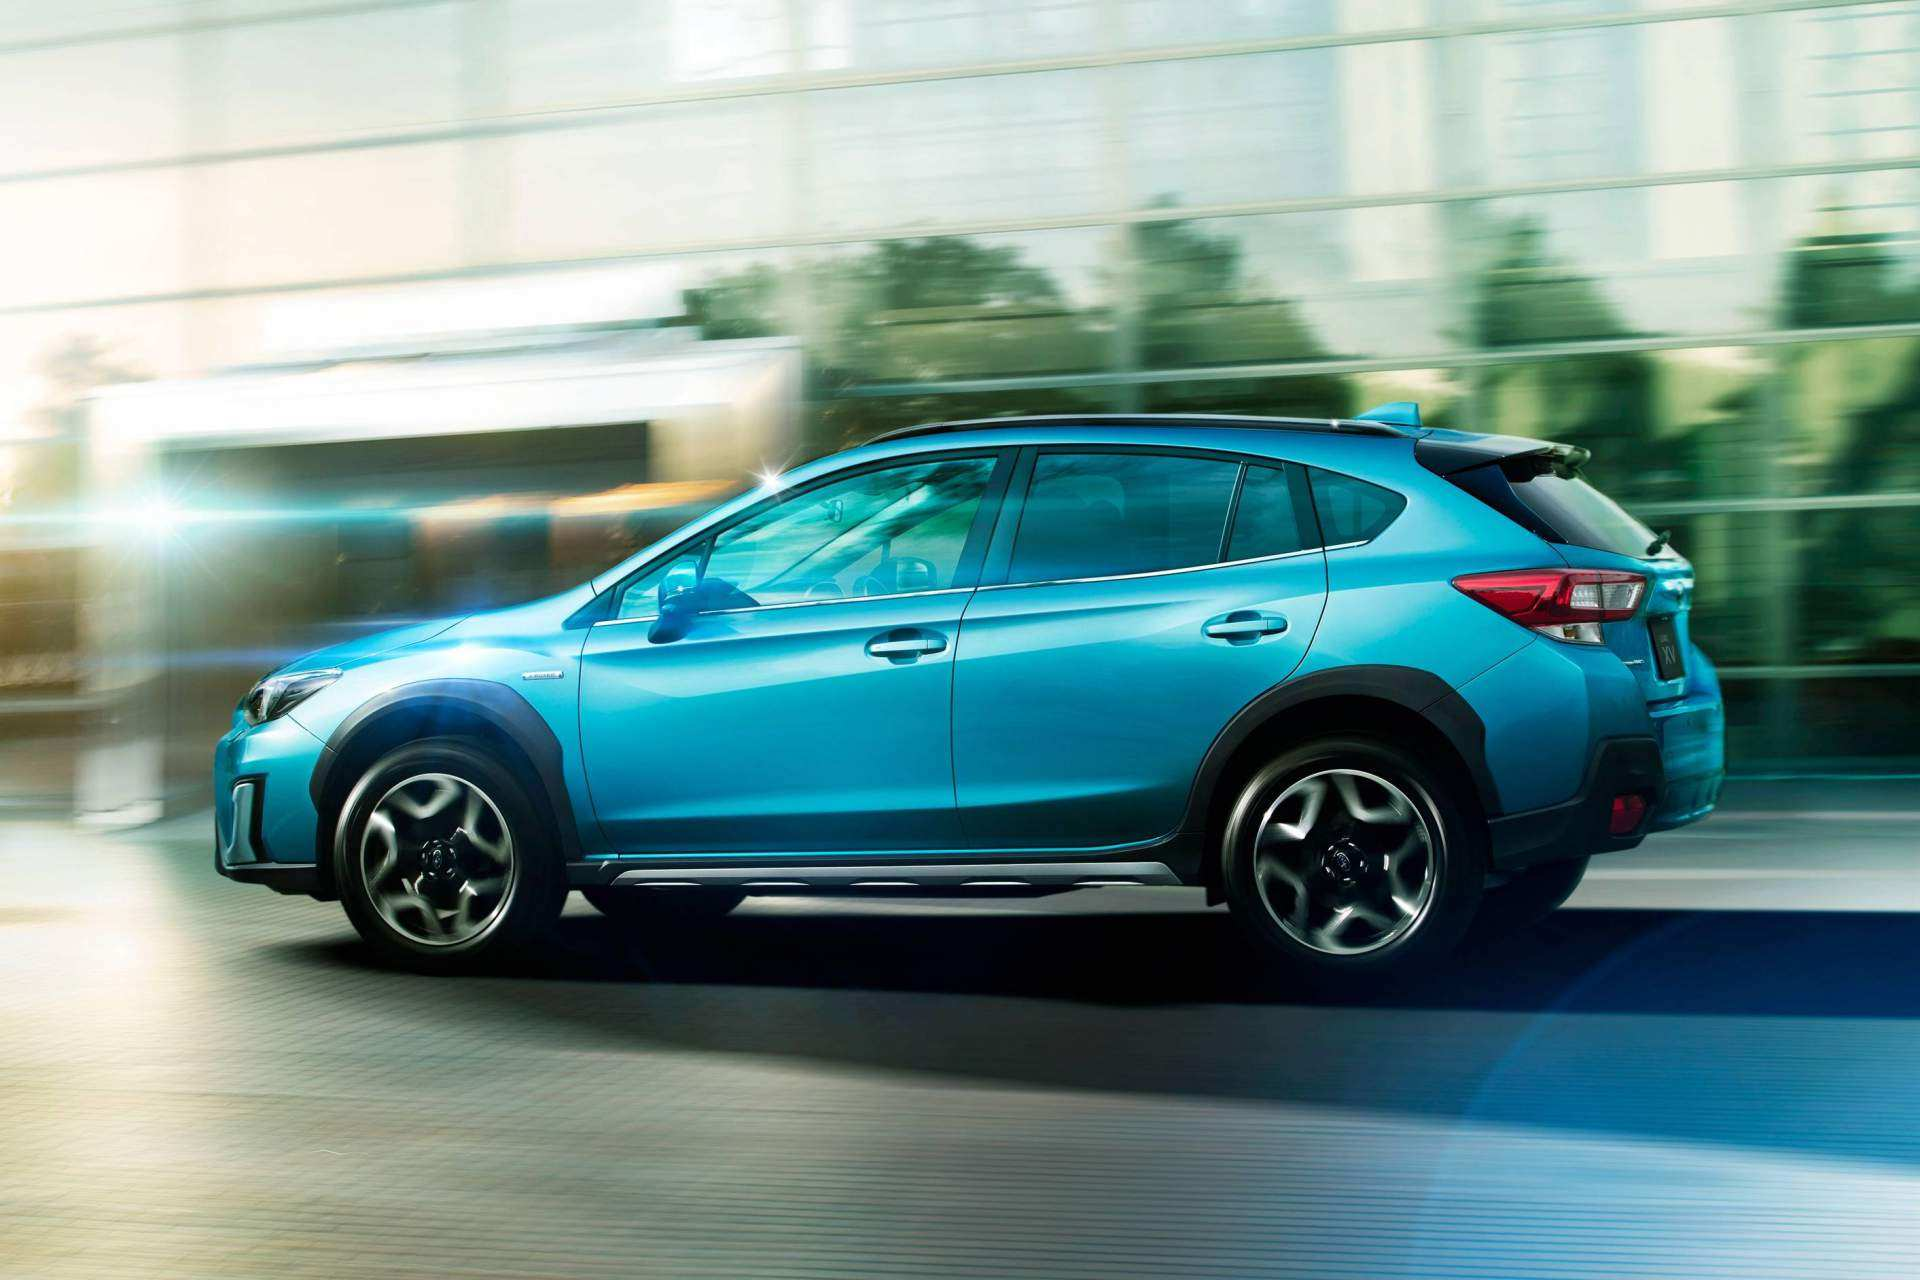 69 The Best Subaru Ev 2020 Redesign And Review